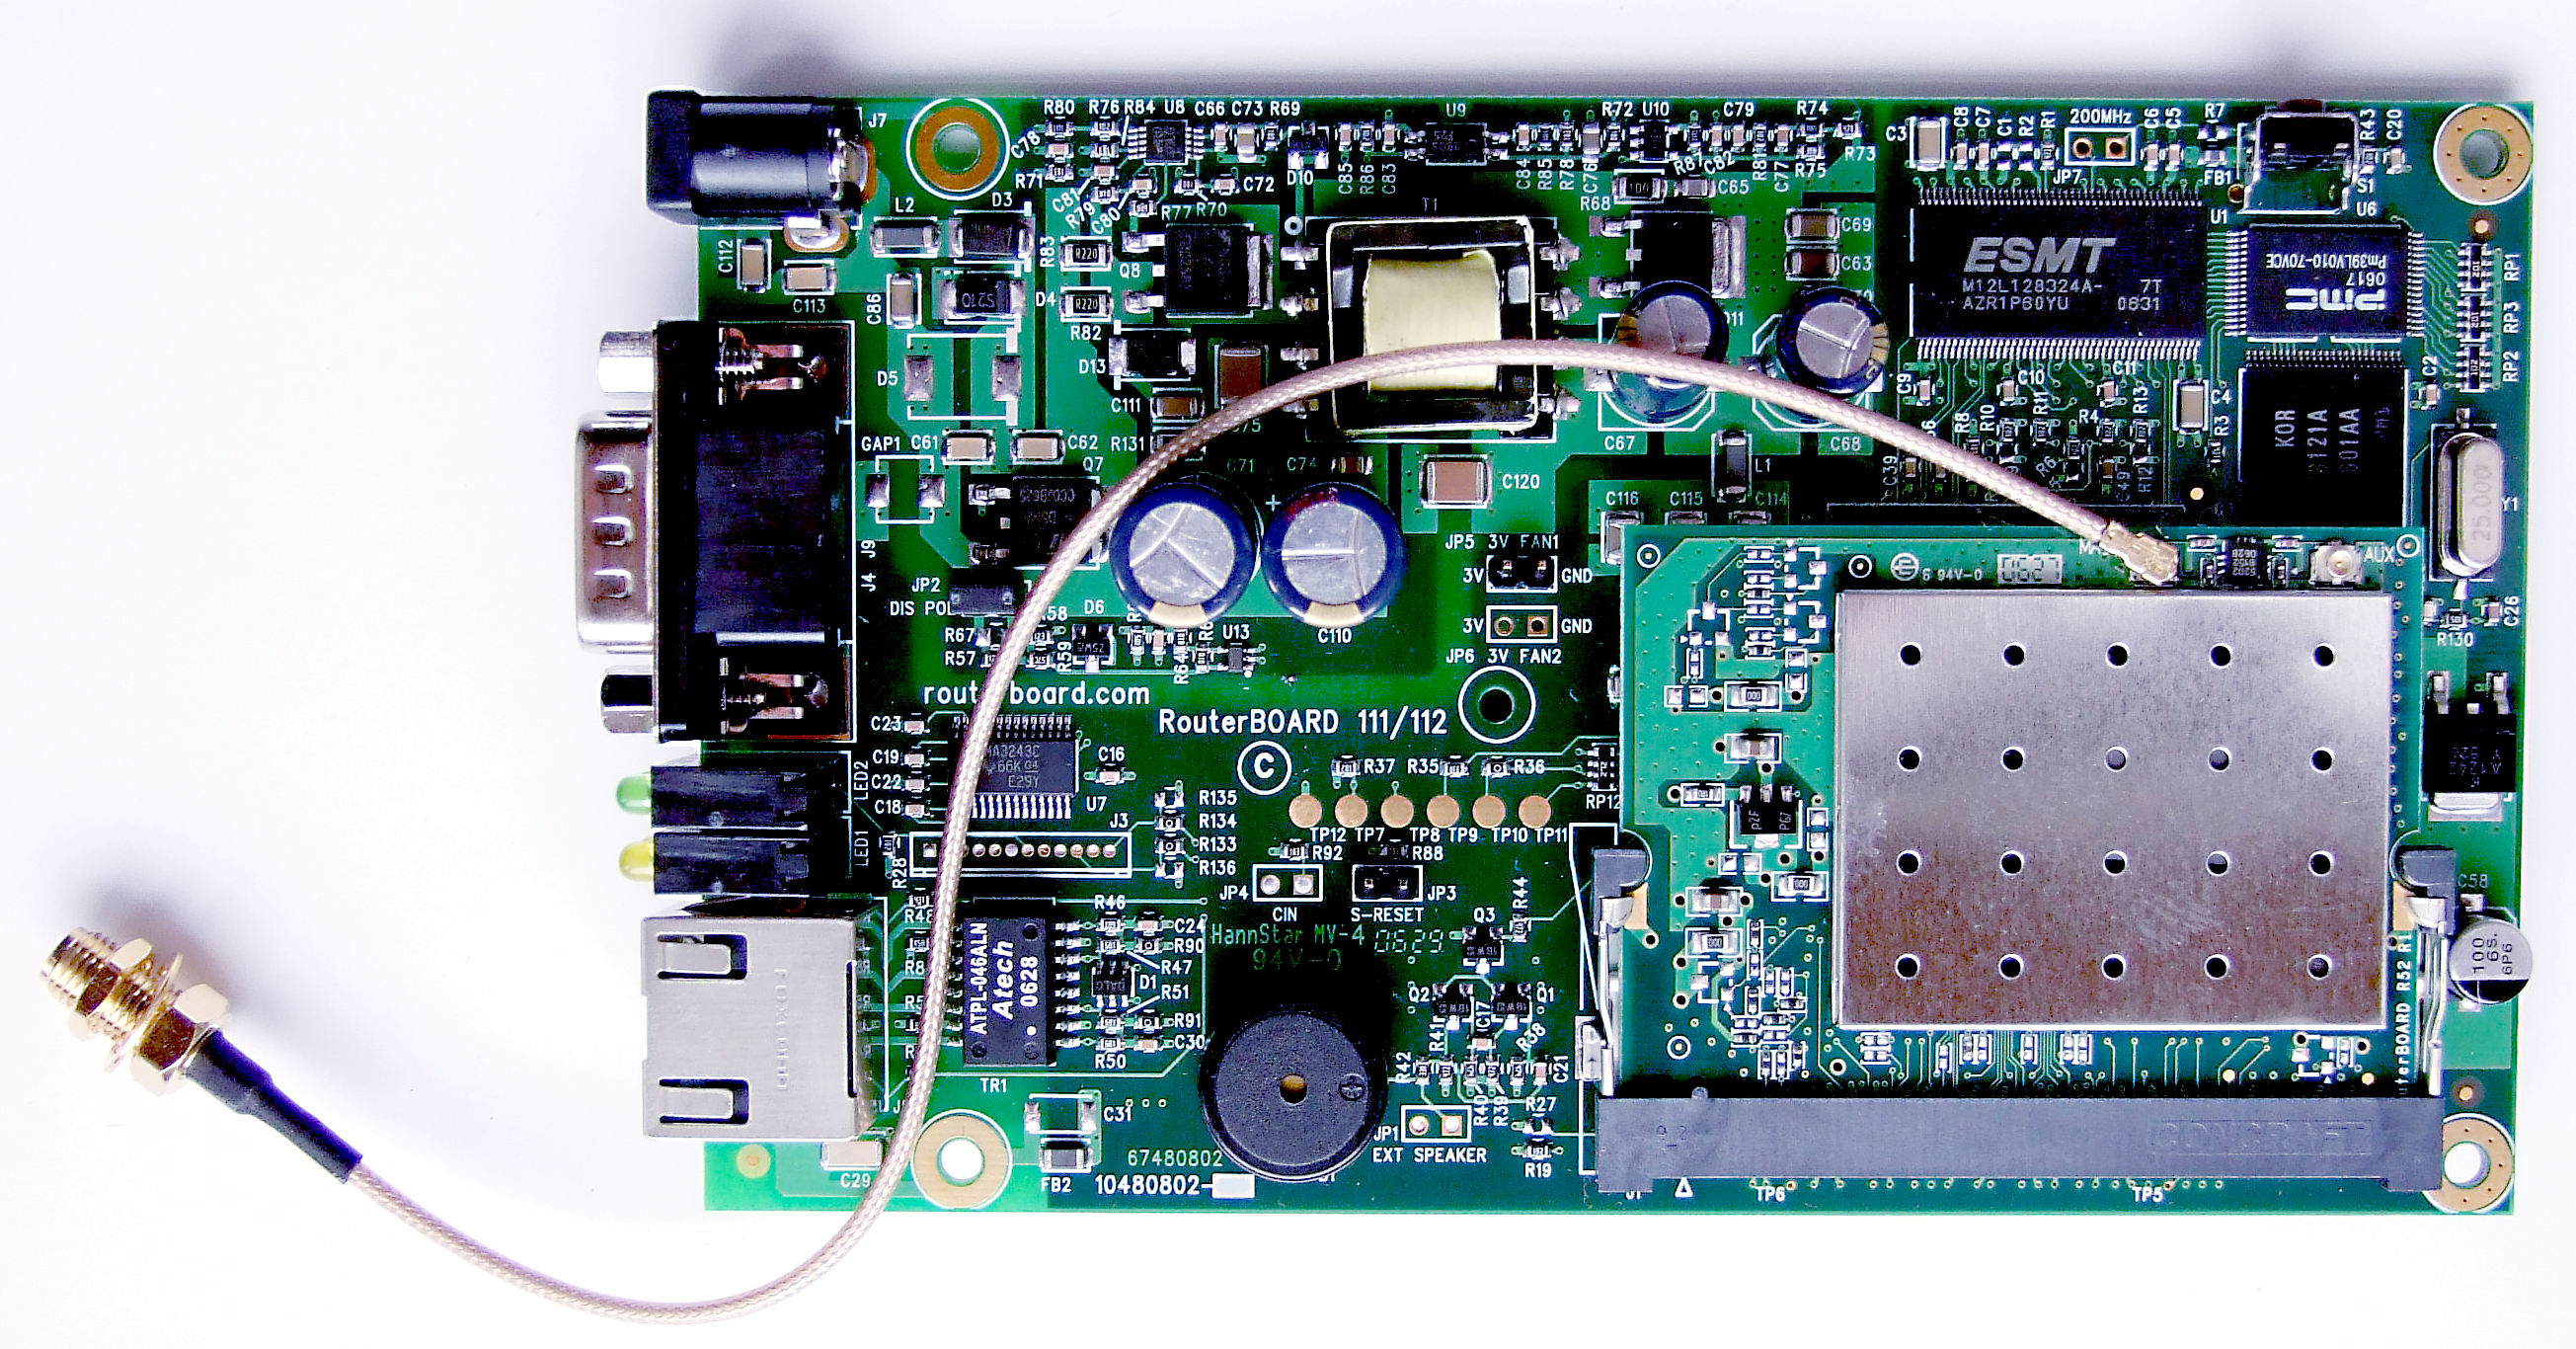 Модуль для коммутатора Huawei 8-port E1 Interface Card-DB44-75ohm, 1*1,with HW General Security Platform Software